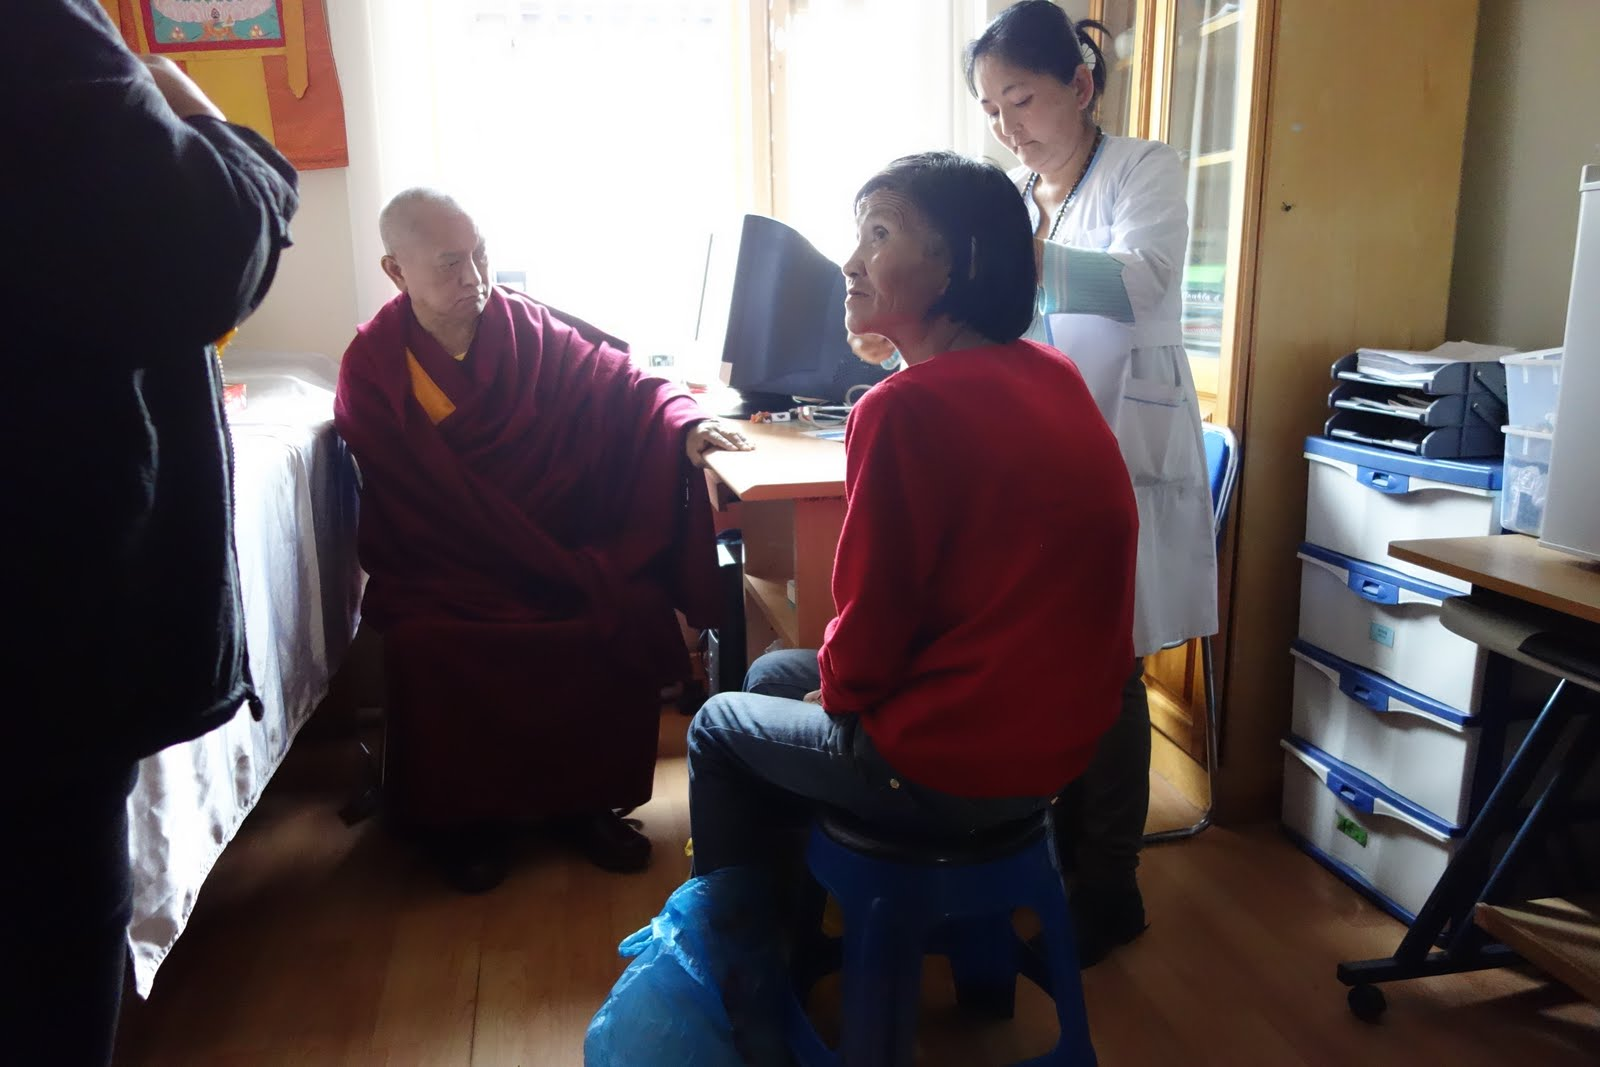 Rinpoche talking with patients at the free health clinic in Ulaan Bataar. Mongolia. September 2013. Photo: Ven. Roger Kunsang